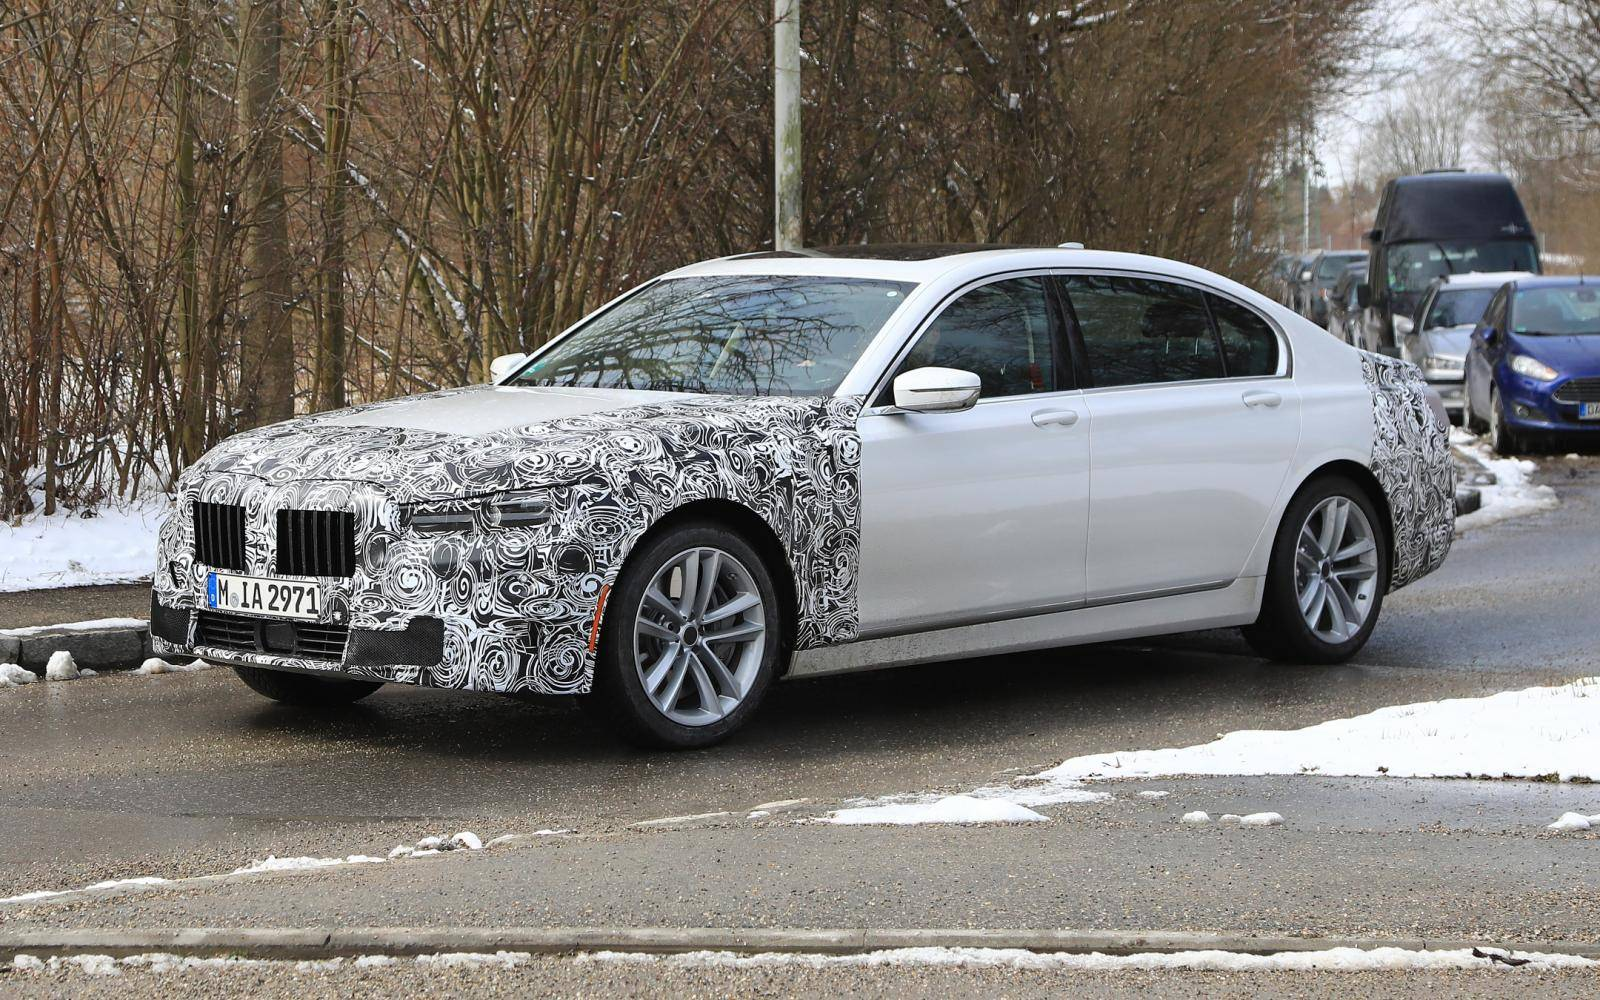 'Mid-cycle facelift' voor BMW 7-serie in aantocht